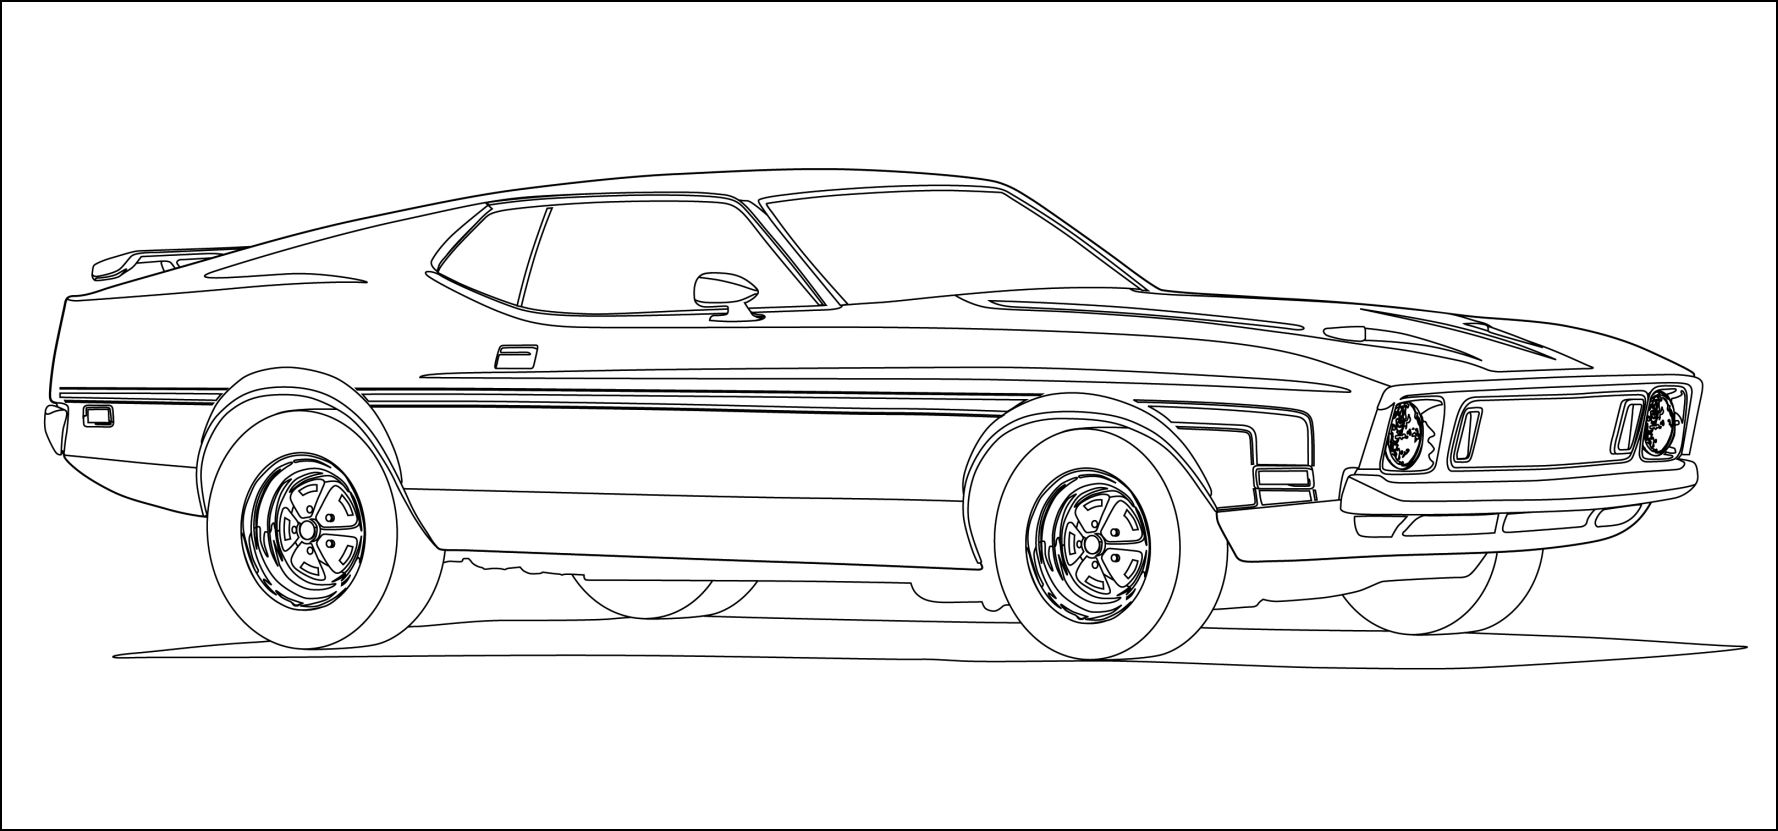 mustang coloring pages to print - photo#15